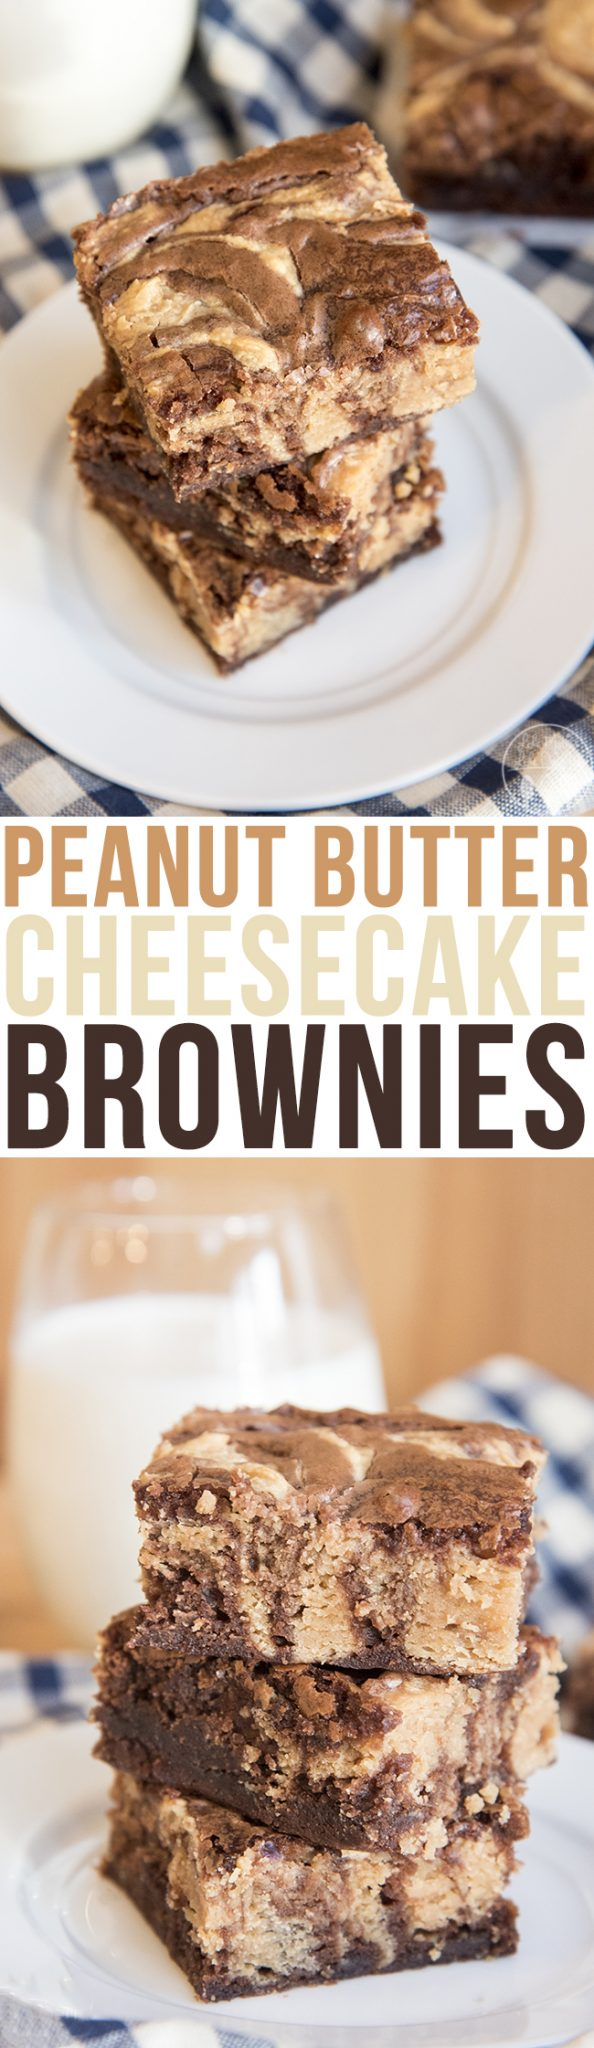 Peanut Butter Cheesecake Swirled Brownies - These peanut butter cheesecake swirled brownies have a delicious brownie base, swirled with a sweet peanut butter cheesecake and baked to perfection!